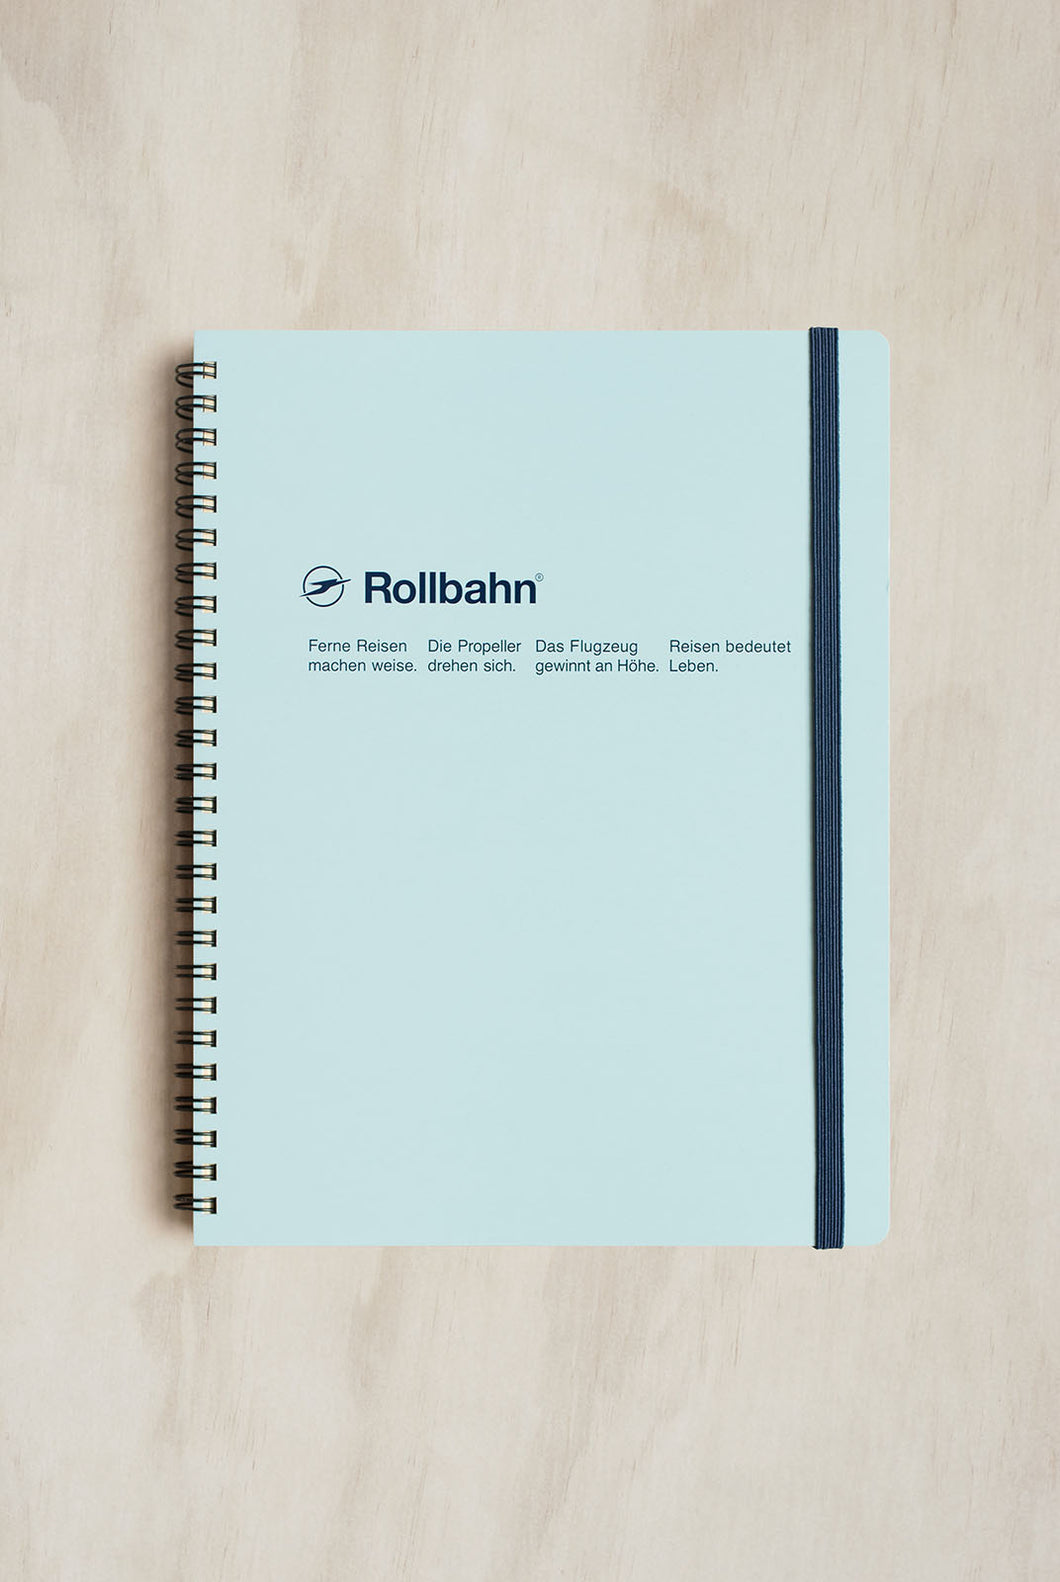 Delfonics - Rollbahn Notebook - Grid - Extra Large (21x26cm) - Sky Blue